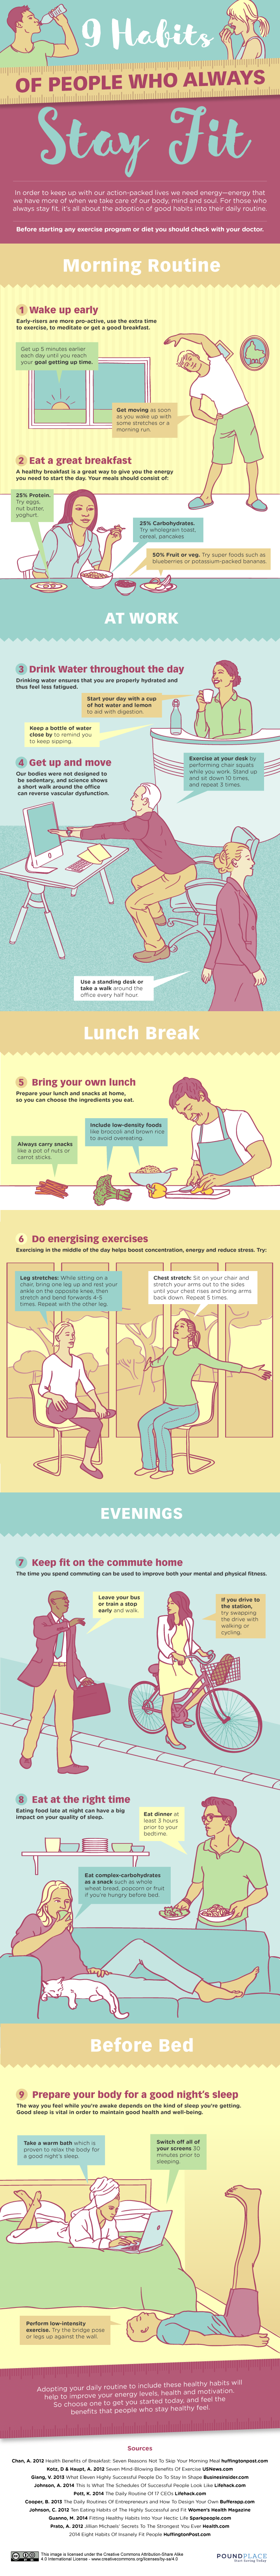 9 Habits Of People Who Always Stay Fit - #infographic